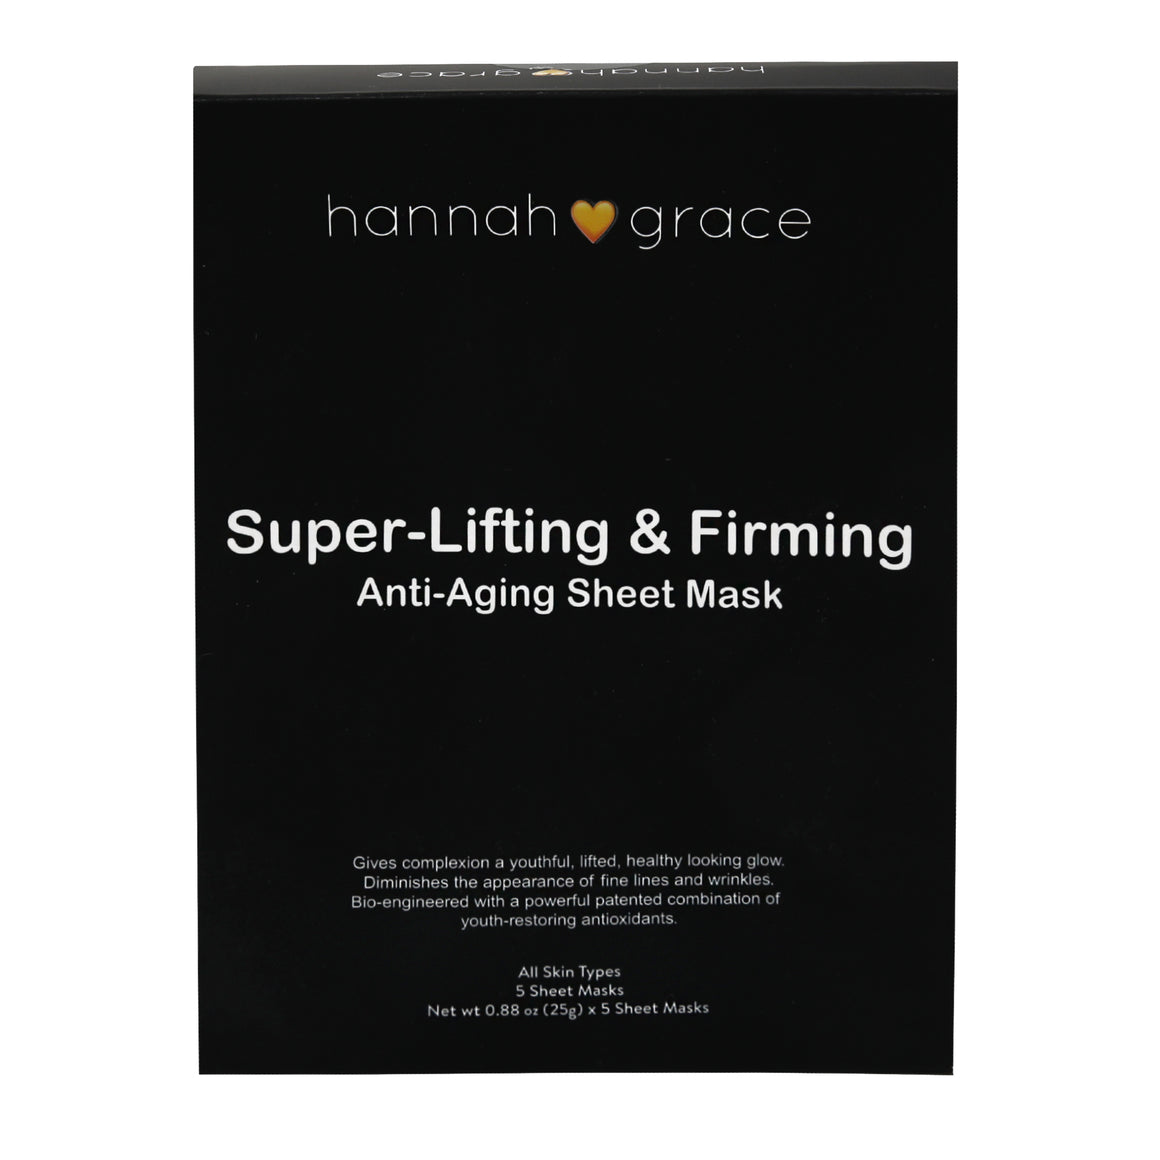 Super-Lifting and Firming Sheet Mask.  Deeply replenishing & smoothing anti-aging face mask - This will have you looking younger after first use!! For all skin types 5 pack